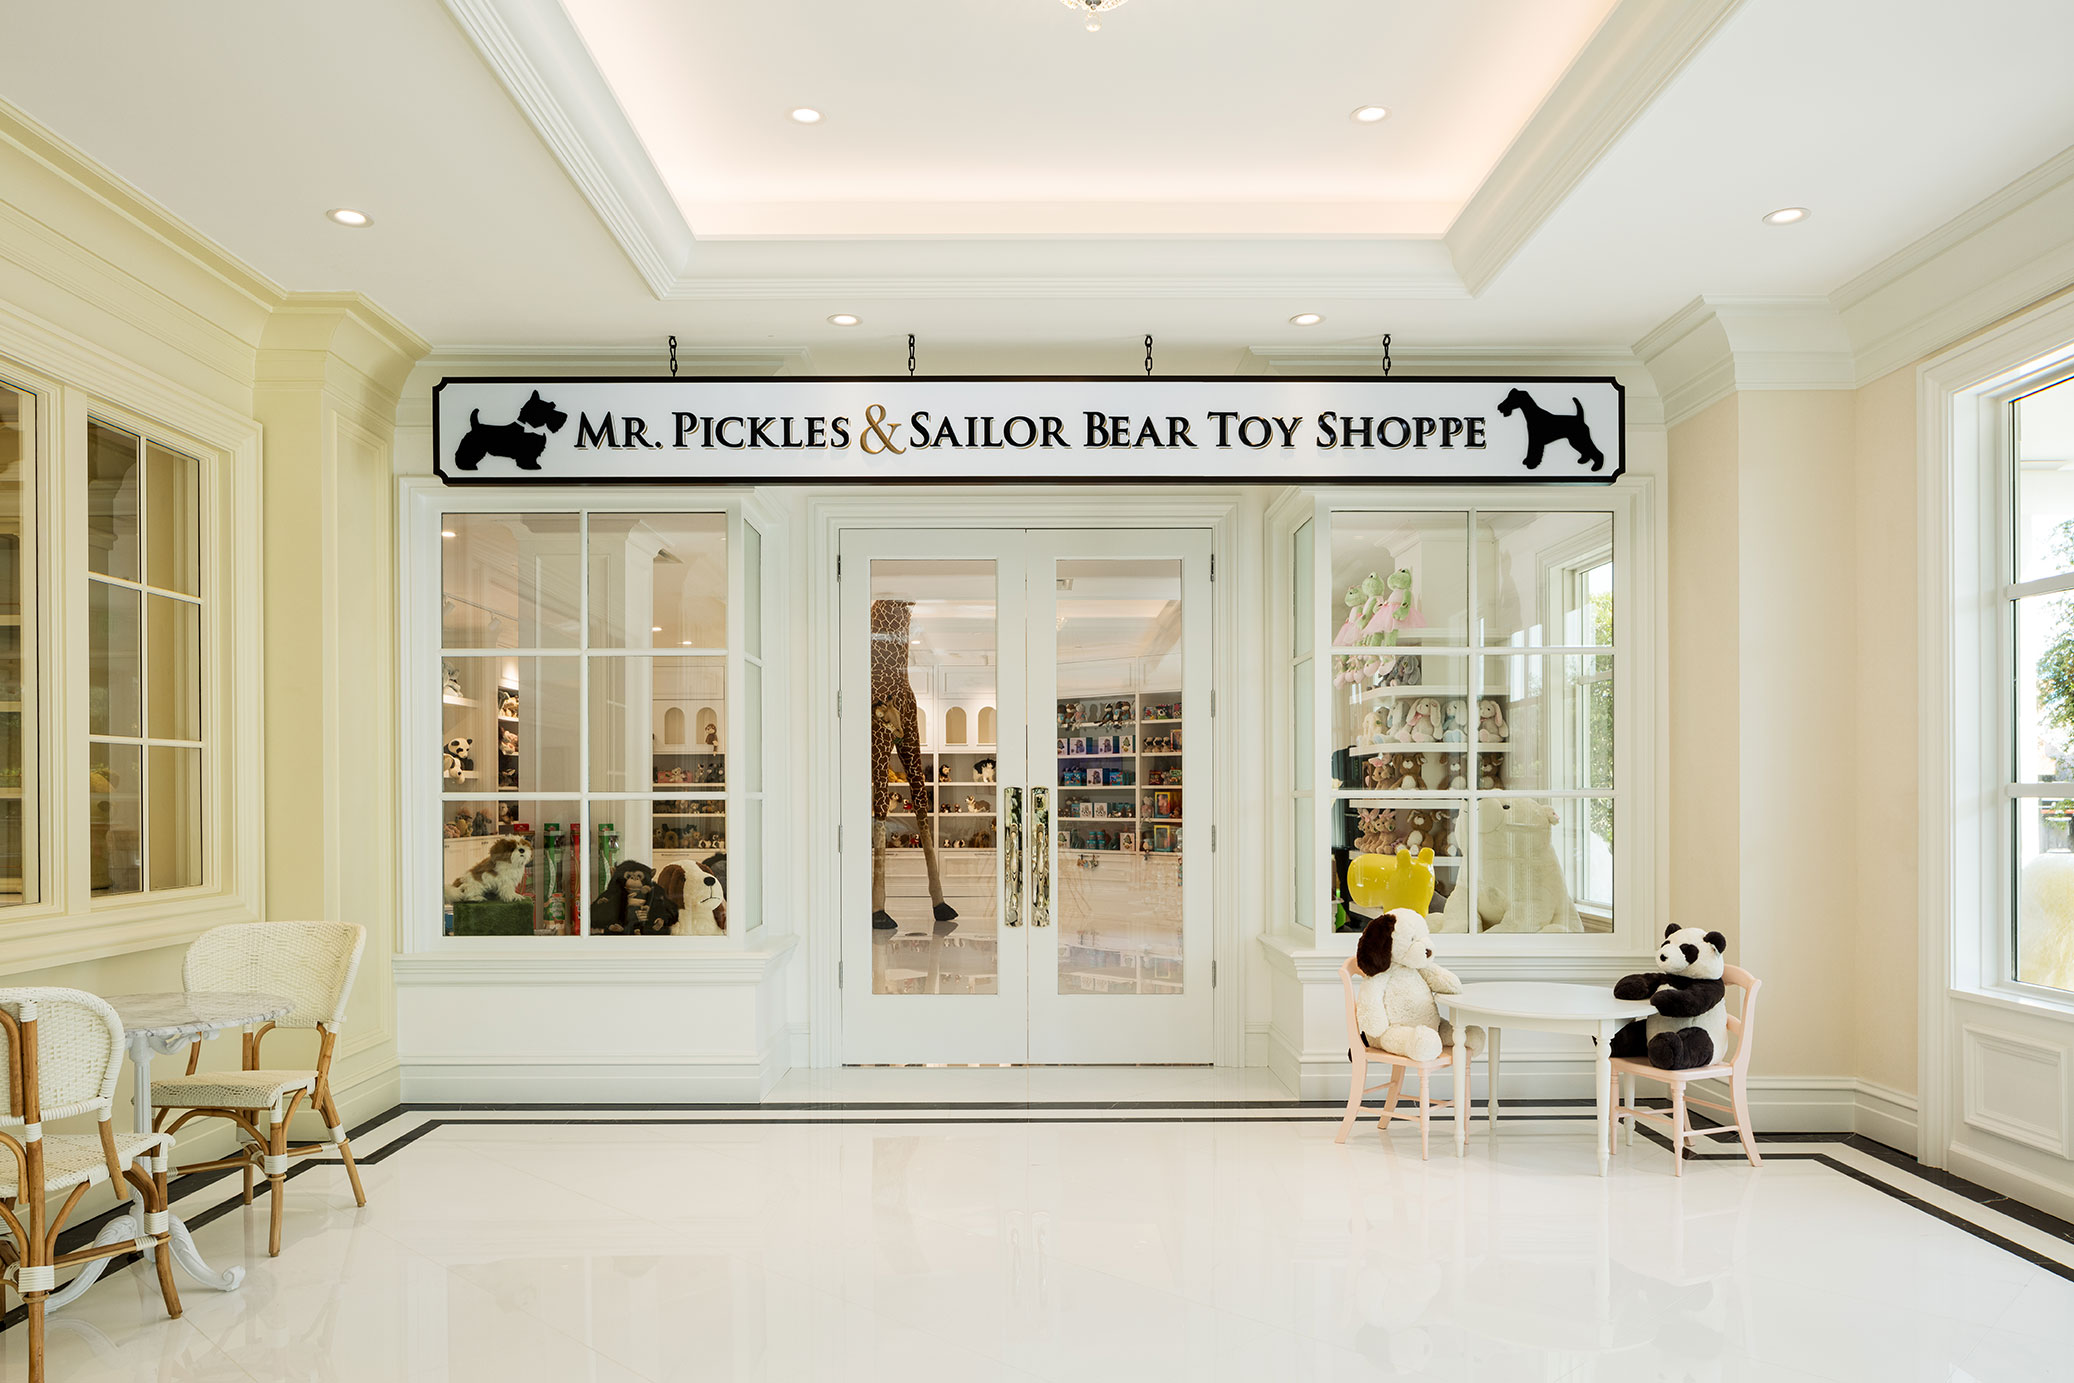 Mr. Pickles and Sailor Bear Toy Shoppe